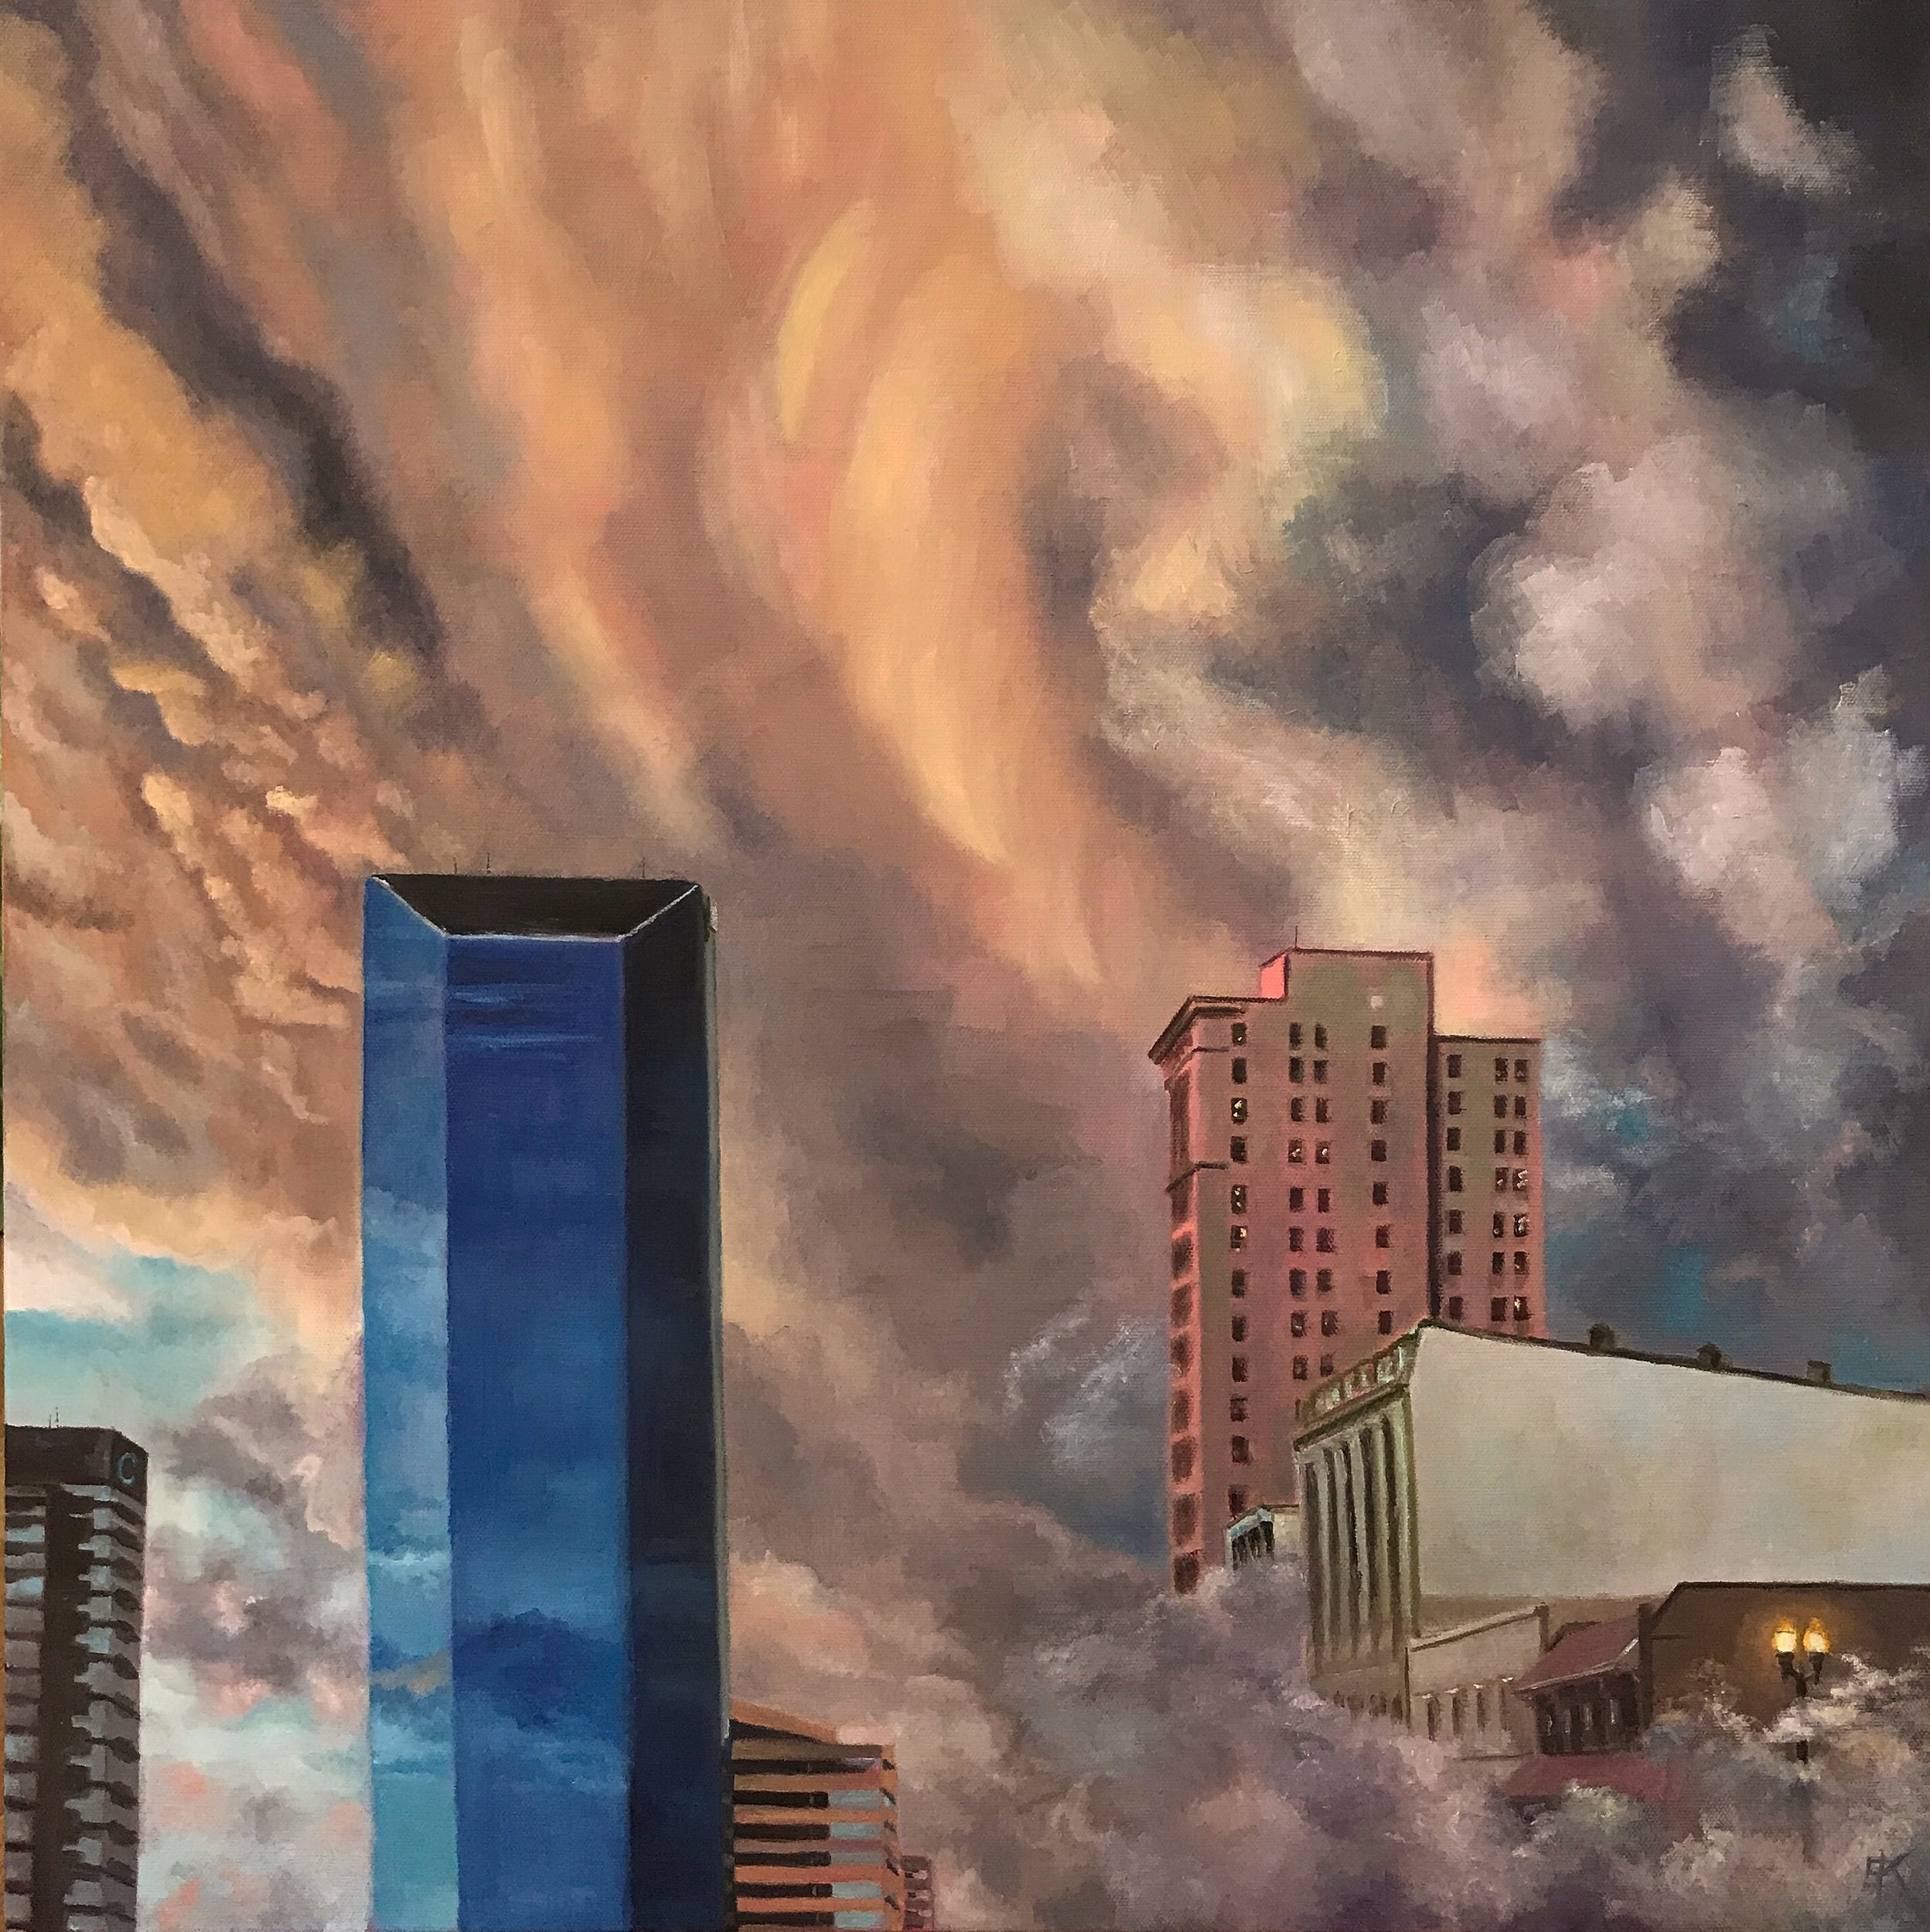 24 x 24 inch, oil on canvas.   'Lexington, Heaven on Earth'